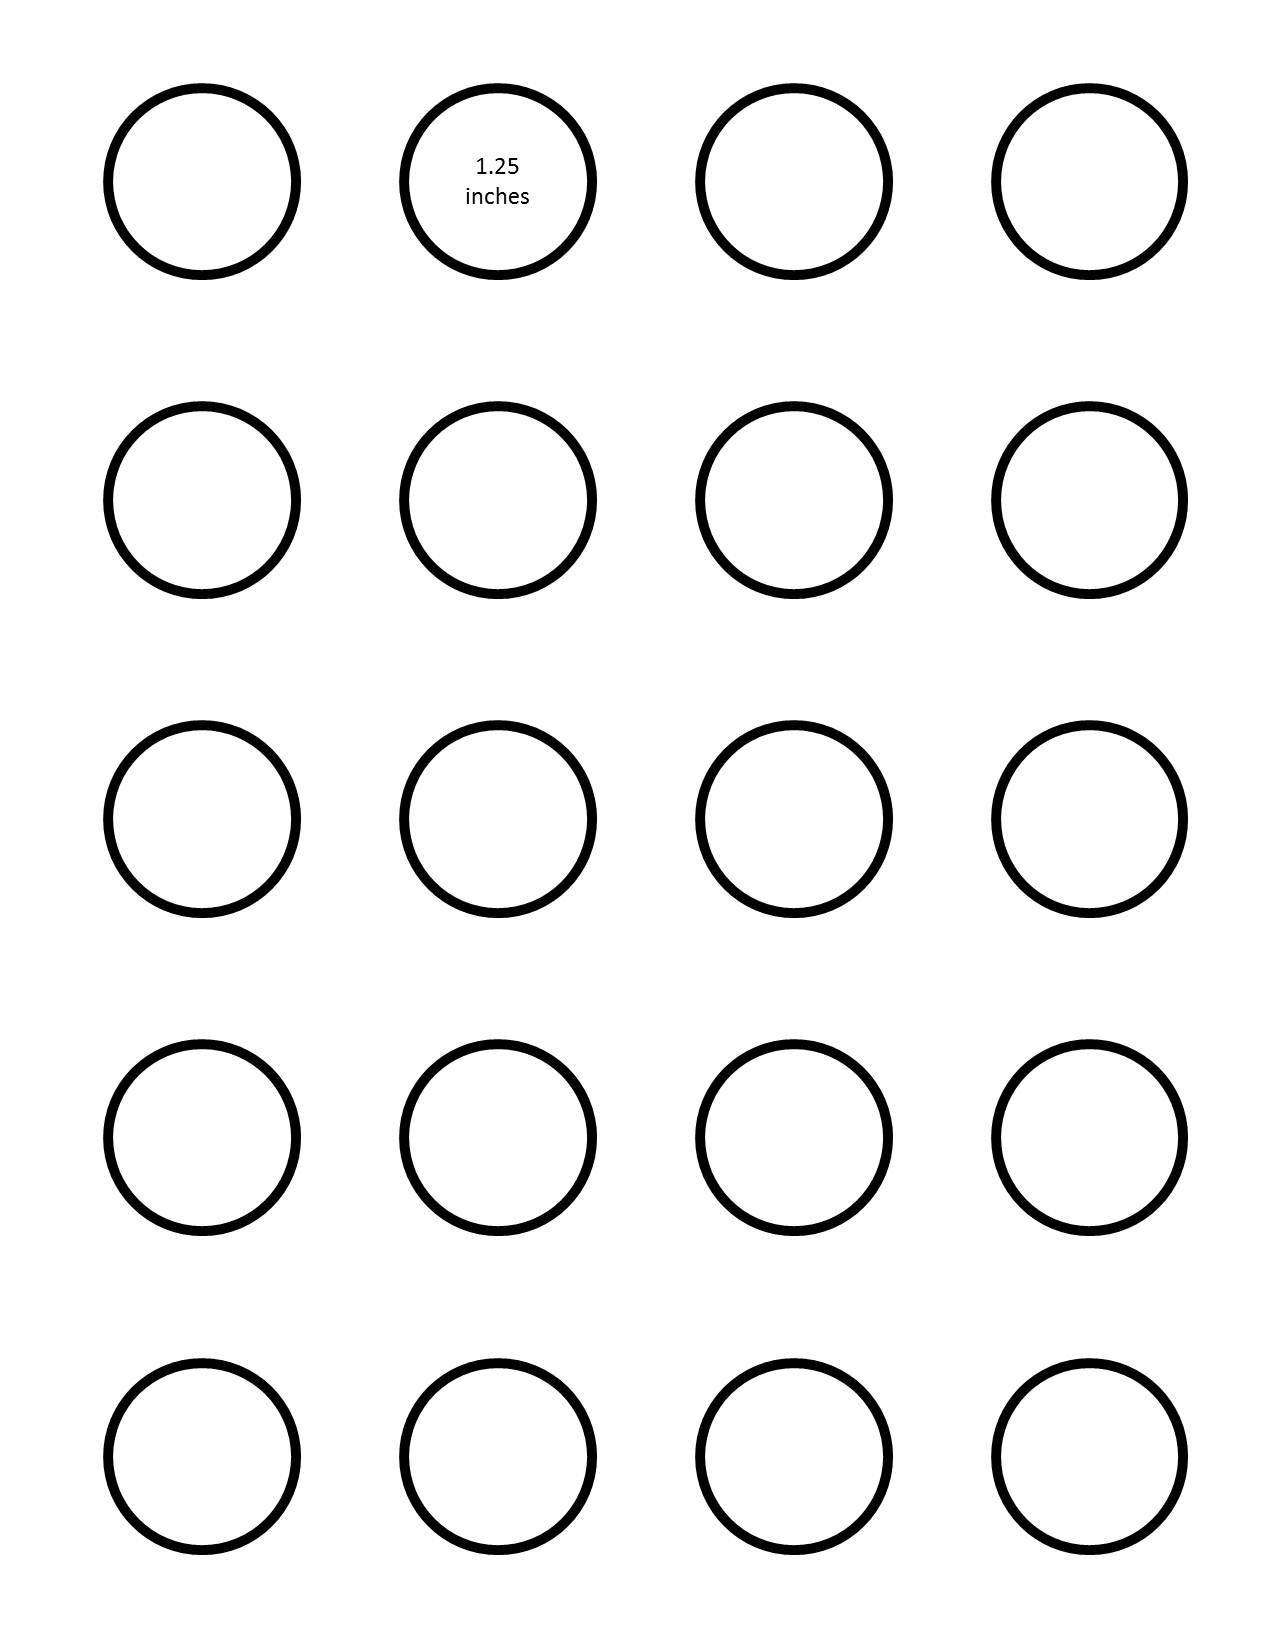 Template For 1.25 Round Labels